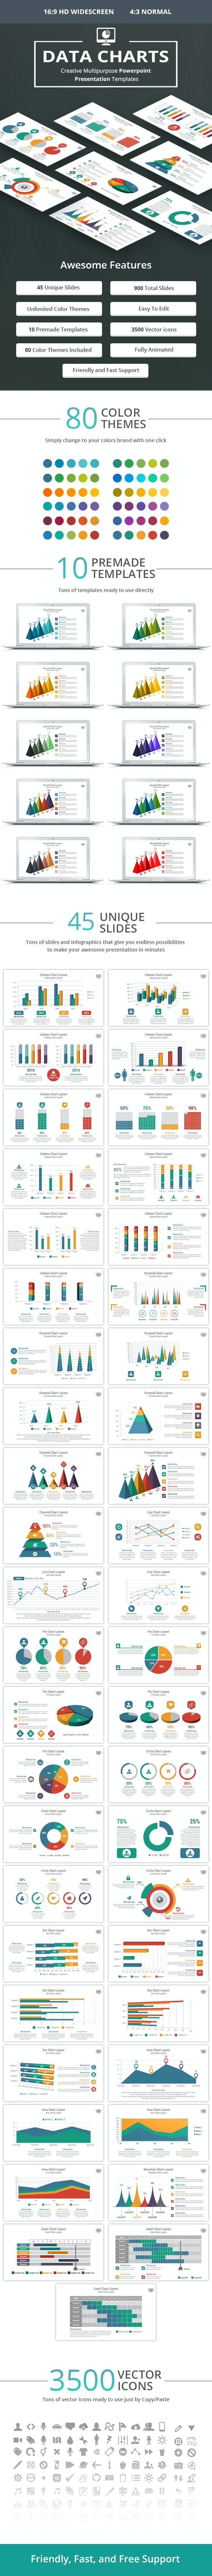 Charts PowerPoint Presentation Template - Finance PowerPoint Templates